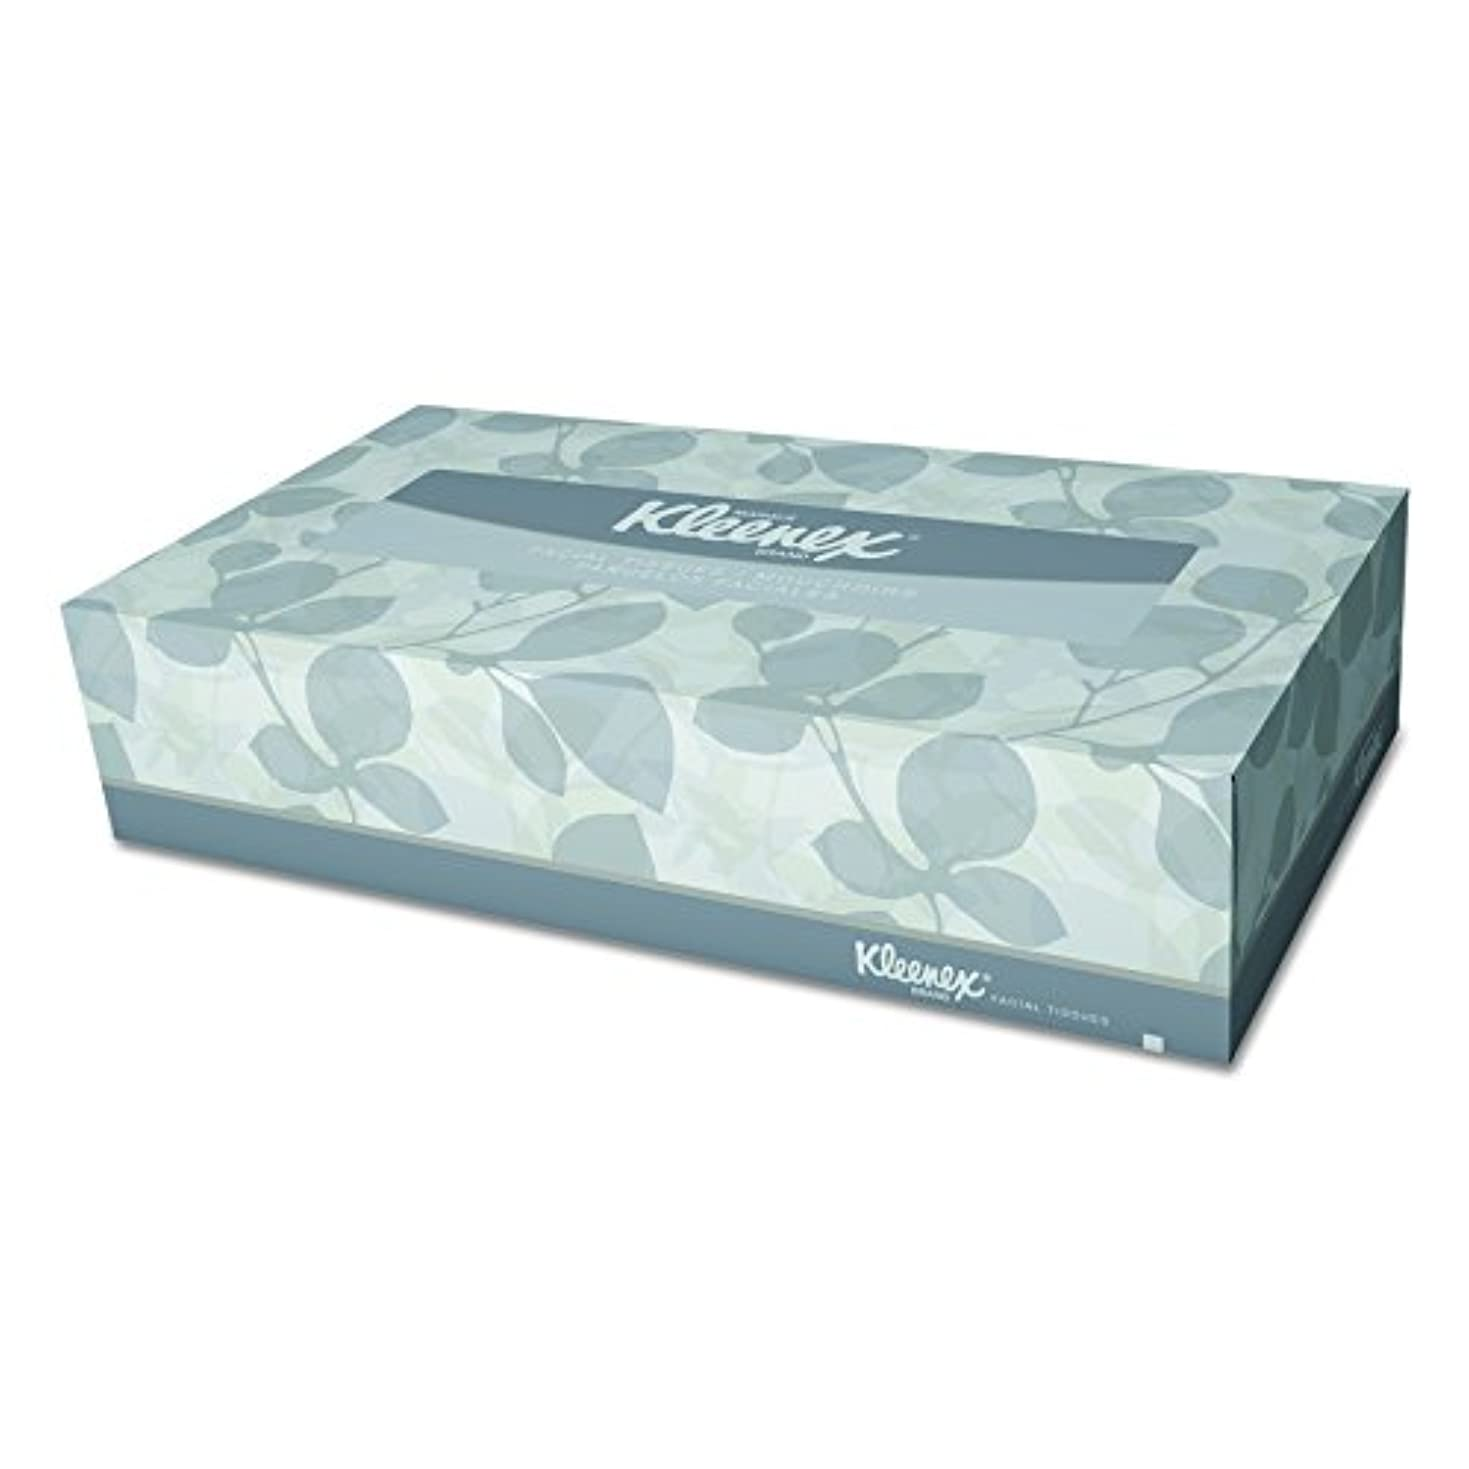 入場料に沿って素朴なKimberly-Clark Kleenex Facial Tissue in Pop-Up Box, White, 125 Tissues per Box (21606) by Kleenex